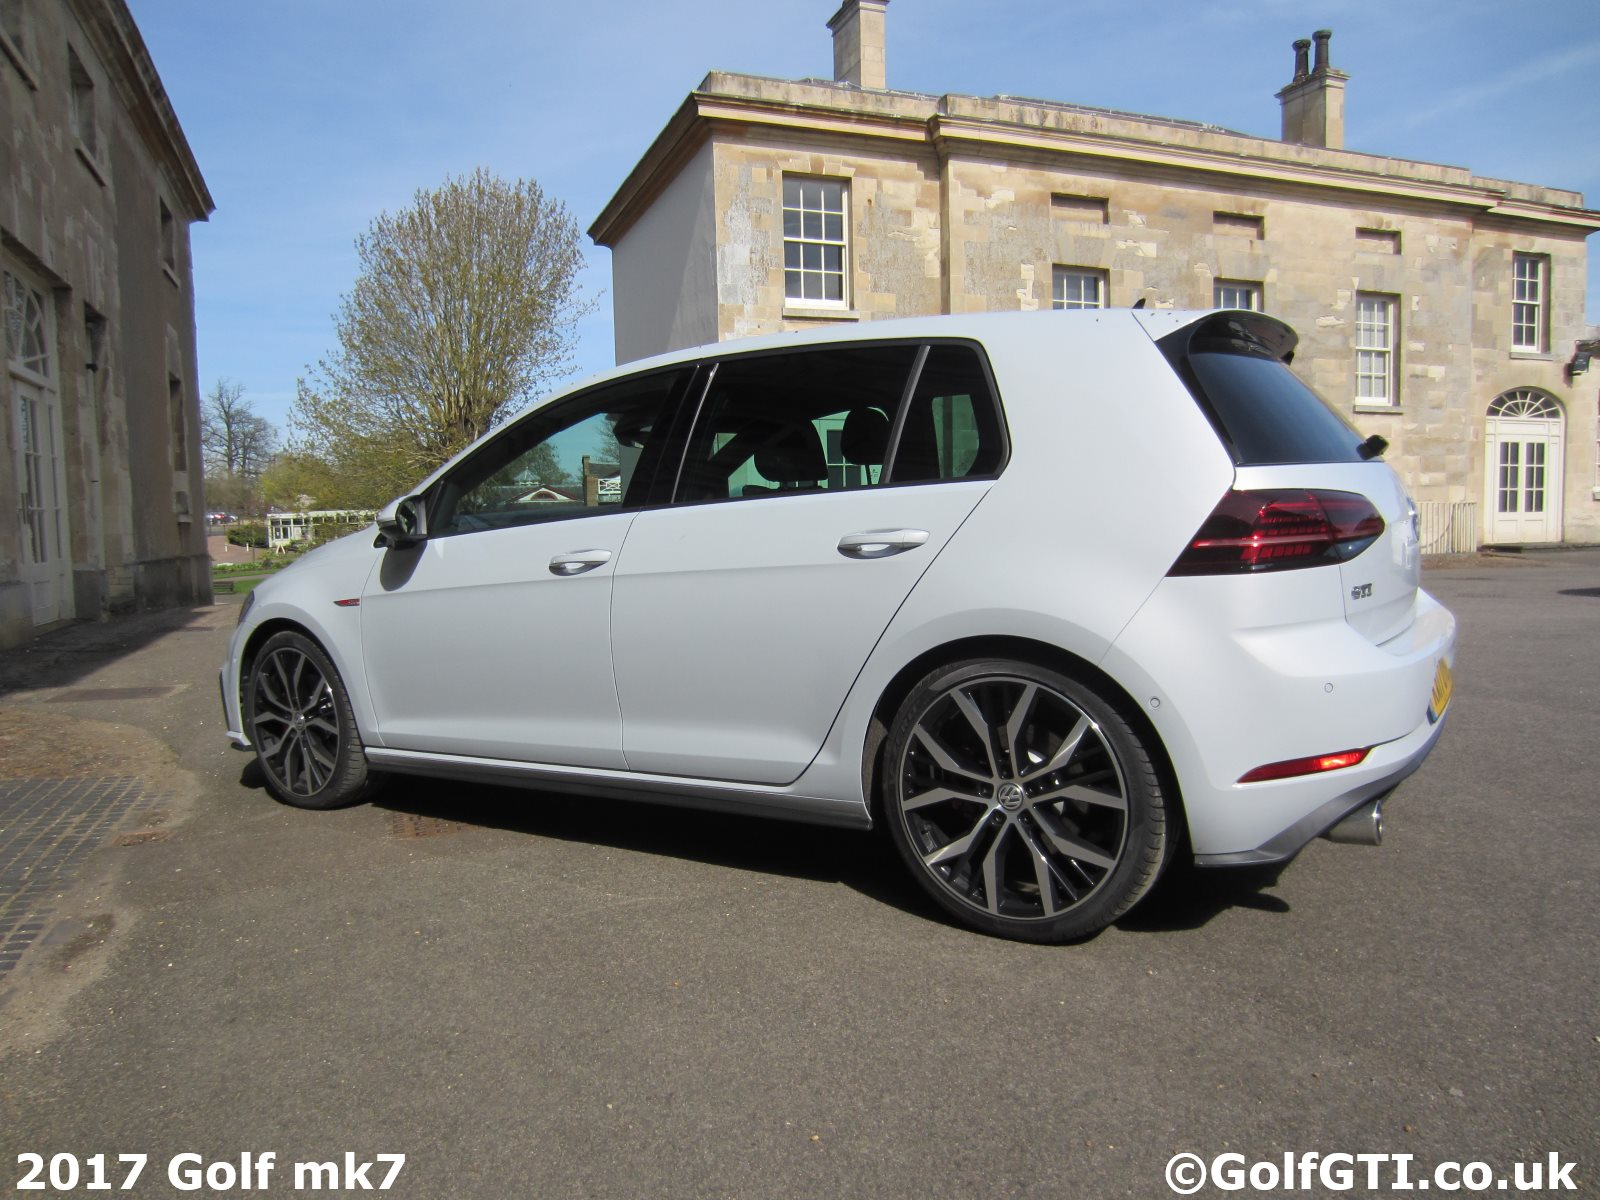 golfgti co uk mk7 golf 2017 updates vw golf gti dsg vs manual golf 7 gti dsg or manual